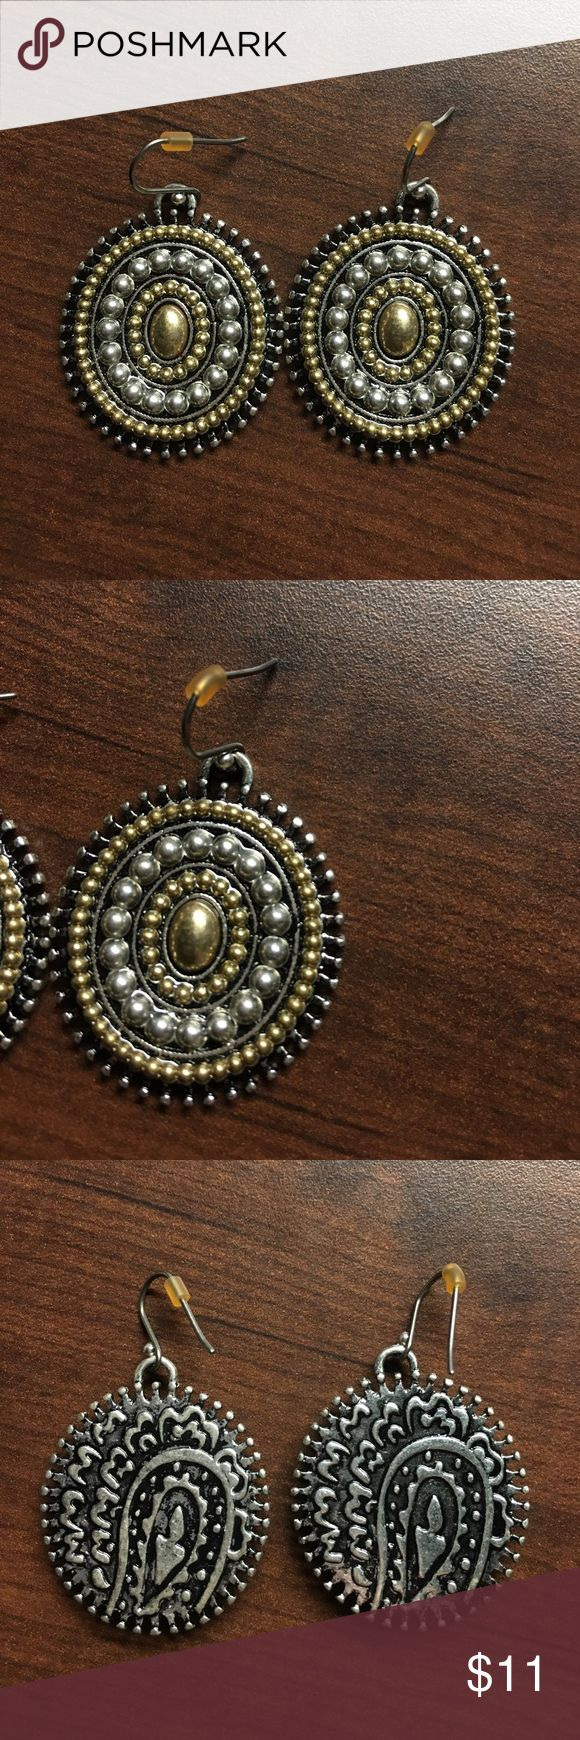 Ruff Hewn earrings Great shape! Cleaned with antibacterial and well taken care of. Ruff Hewn Jewelry Earrings